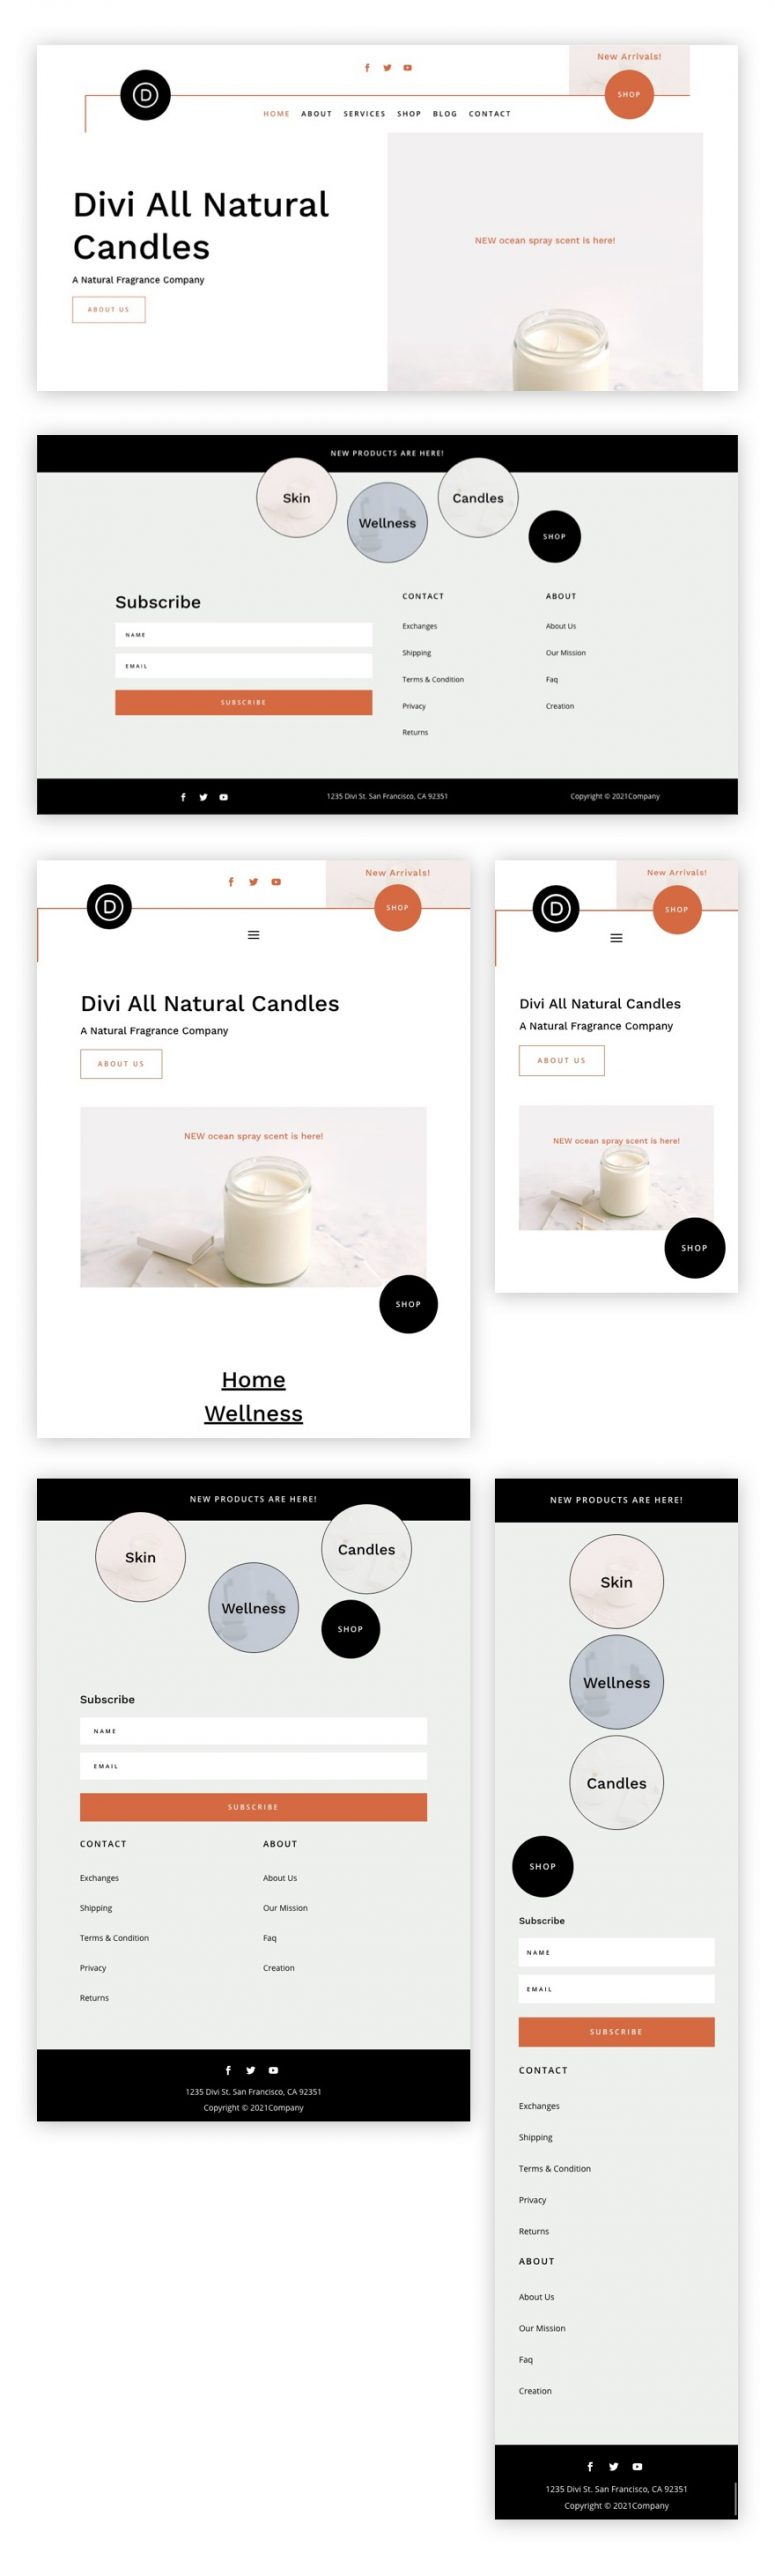 divi candle making header footer template